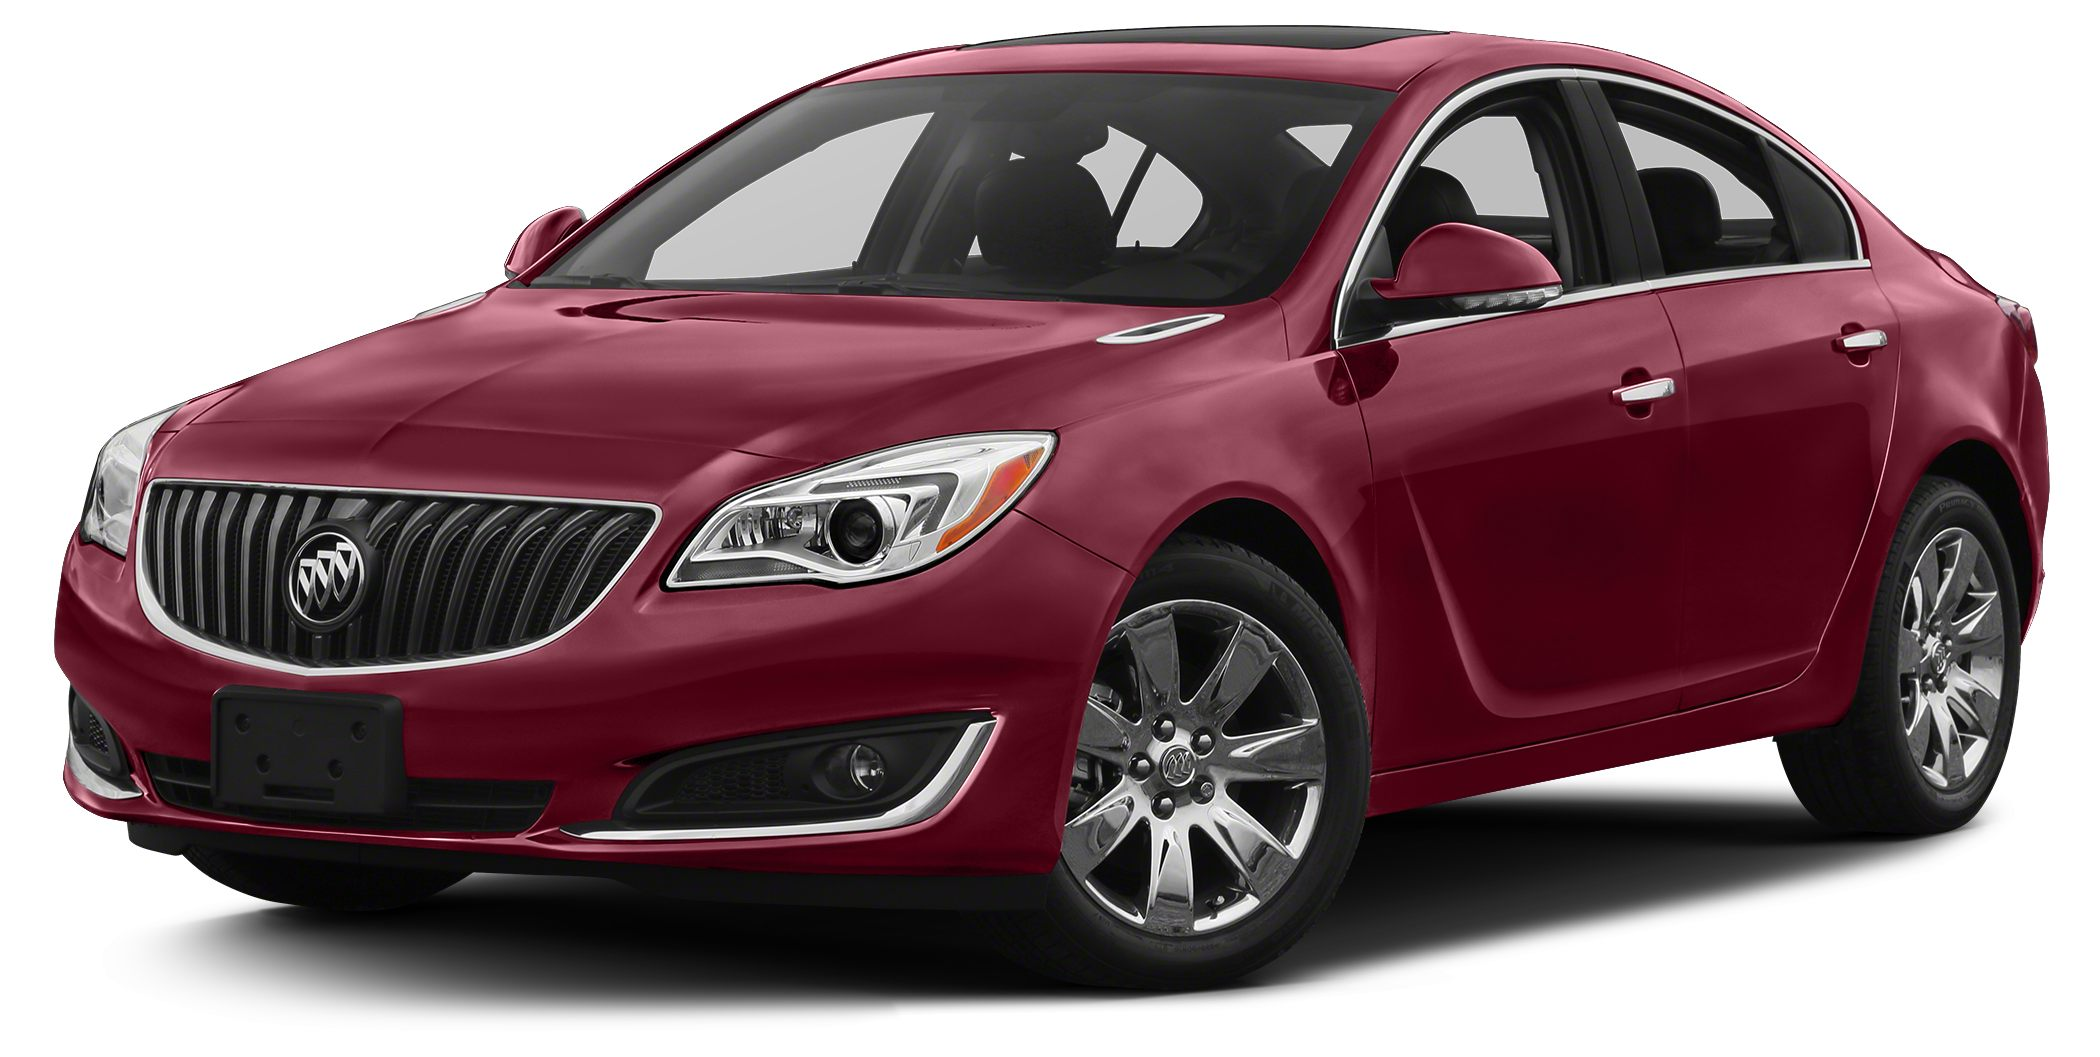 2015 Buick Regal Turbo 15 YEAR 150000 MILE WARRANTY COMES WITH THIS VEHICLE ALONG WITH 2 YEARS O